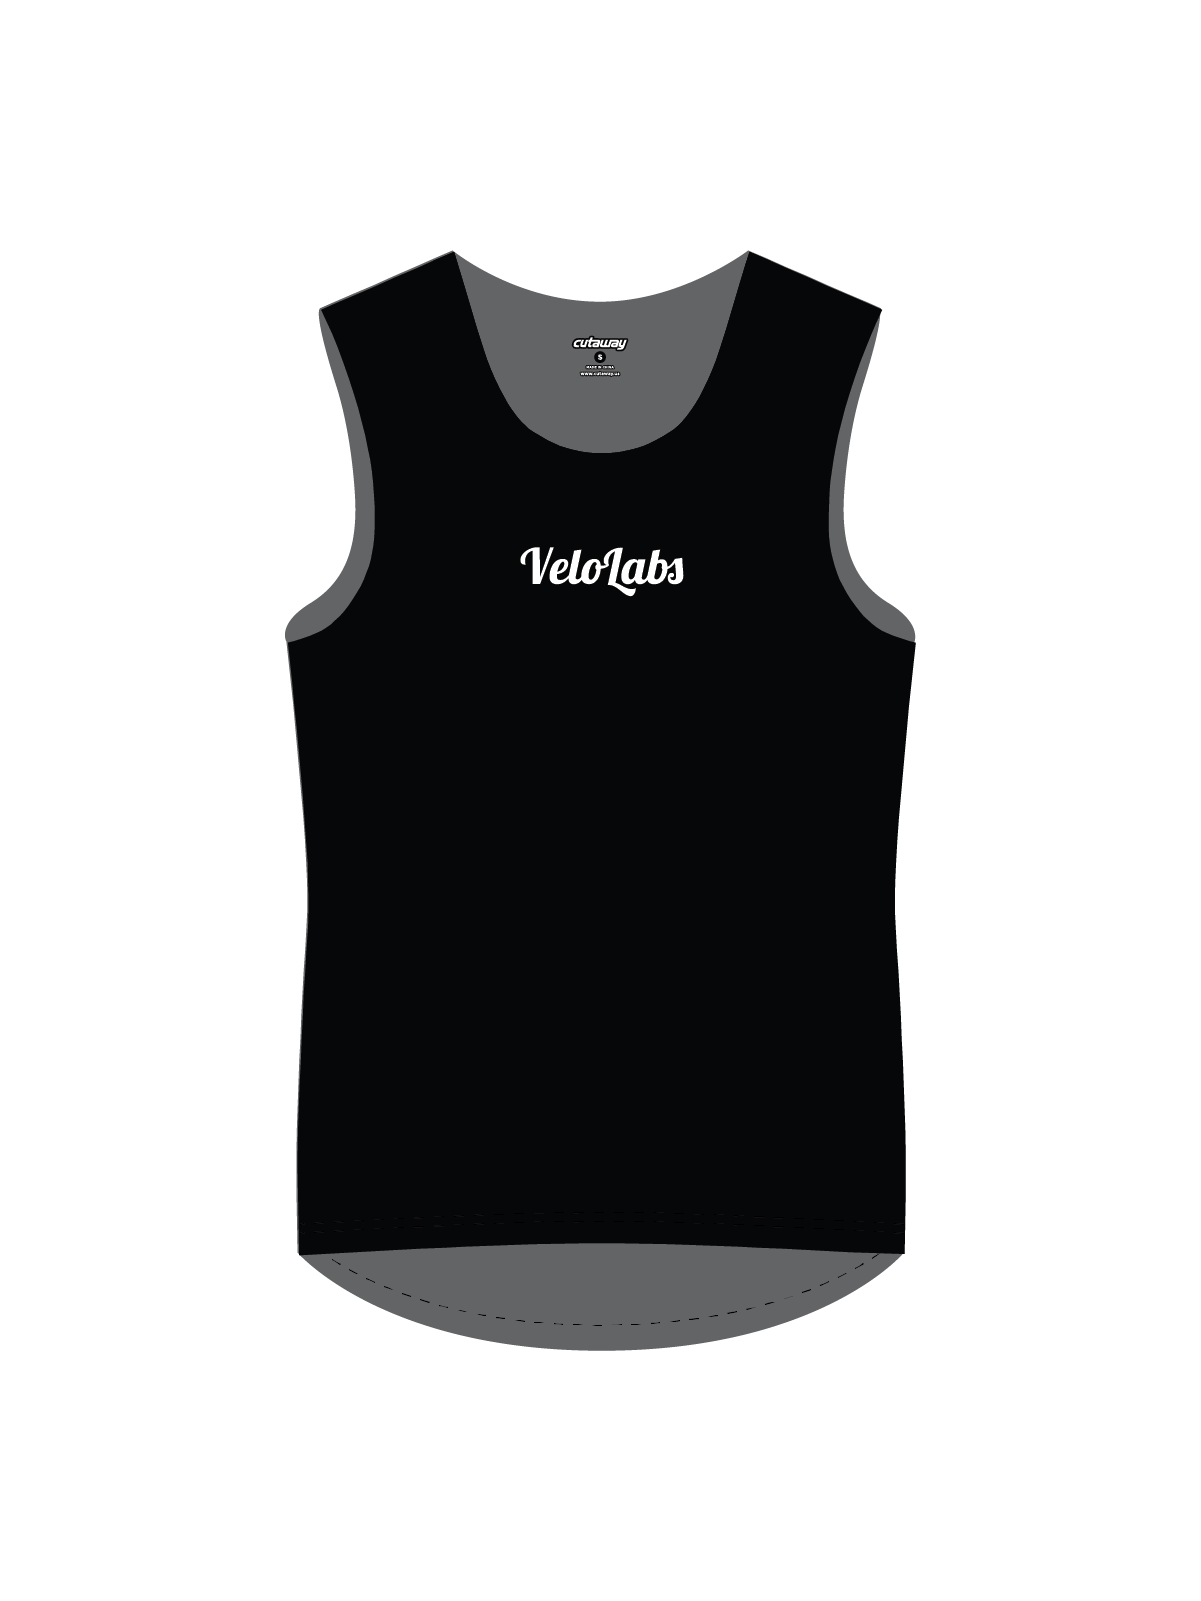 Velolabs Cloud™ Base Layer